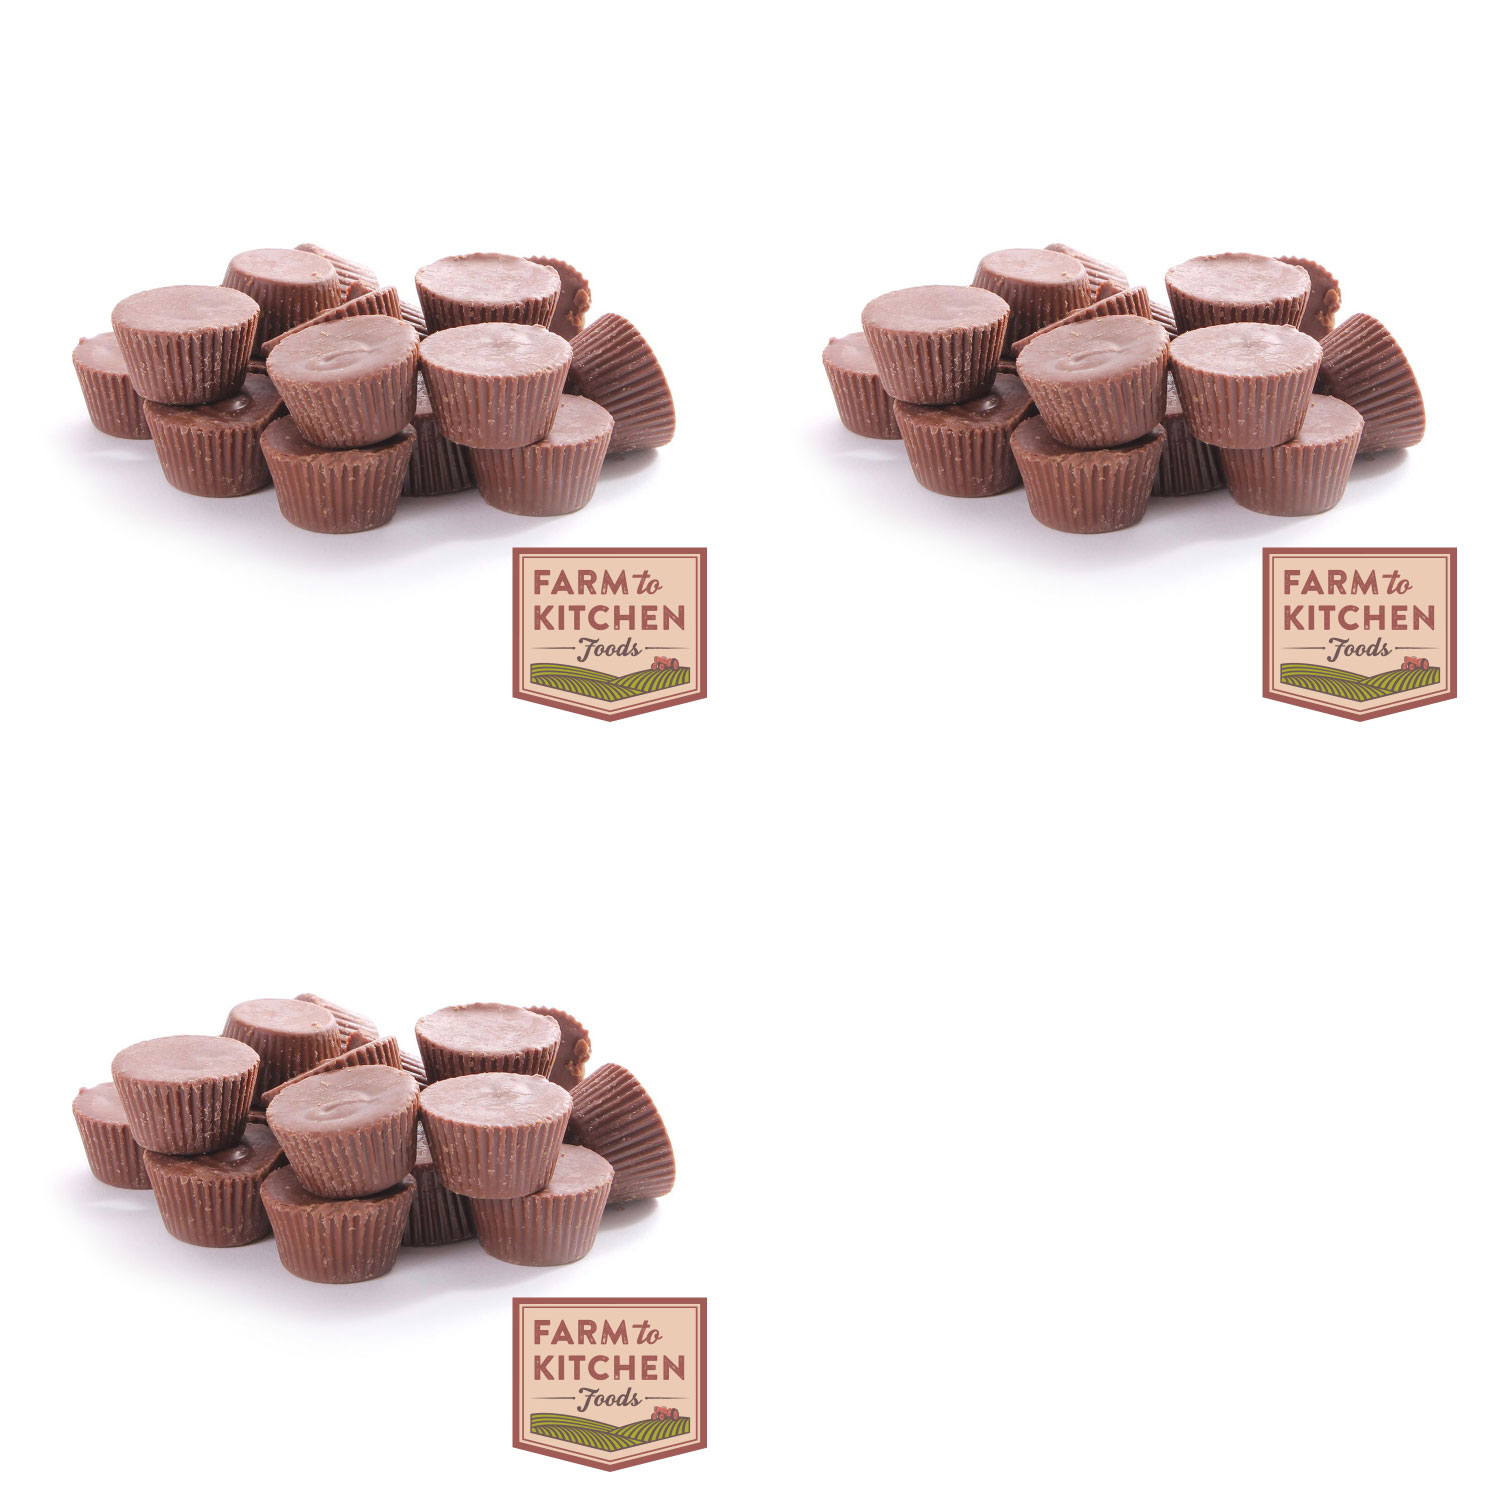 Farm to Kitchen Foods Milk Chocolate Peanut Butter Cups - Buy 2 Get 1 Free